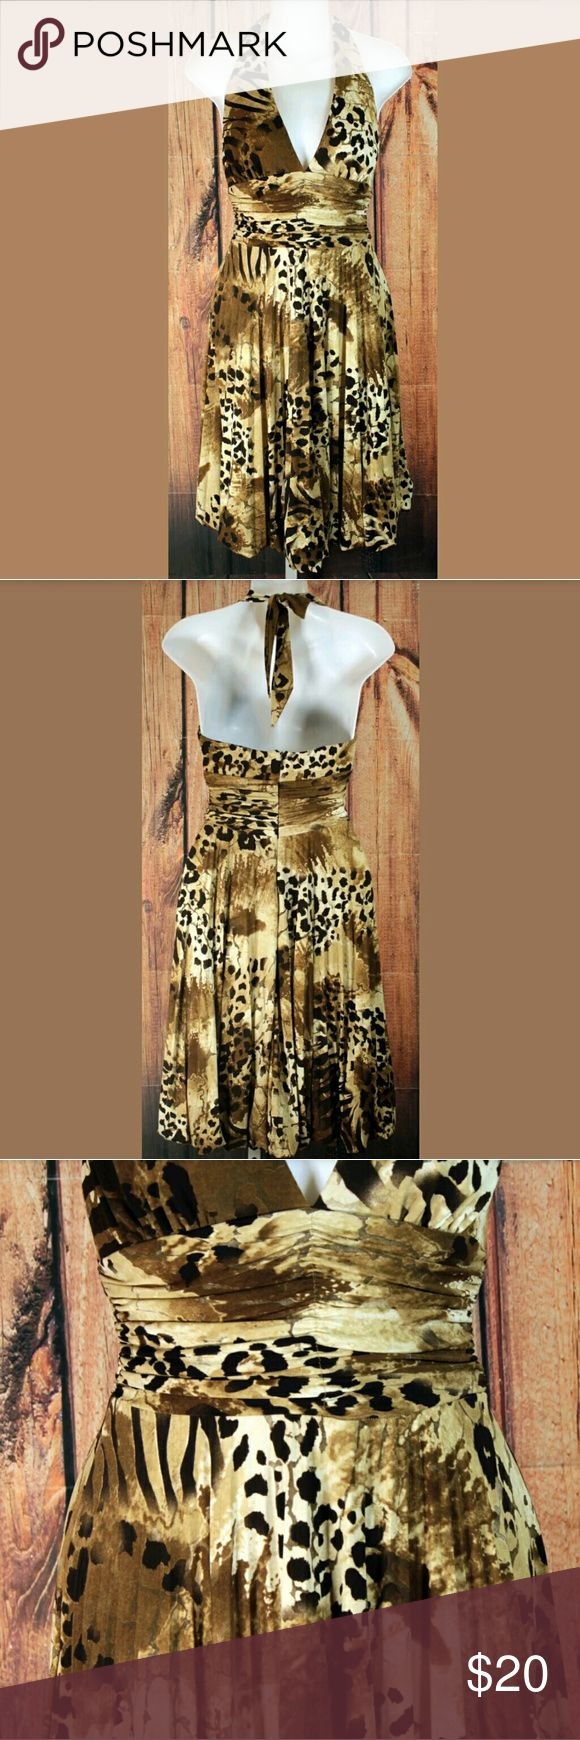 "Cache Pleated Halter Dress Size 4 Animal Print Cache Halter Dress Womens Size 4 Pleated Animal Print Style 3961 Condition: Great Pre-Owned Condition from Clean Pet/Smoke free home.  Measurements: Length: 40"" Bust (Pit to Pit): 12.5"" Cache Dresses"